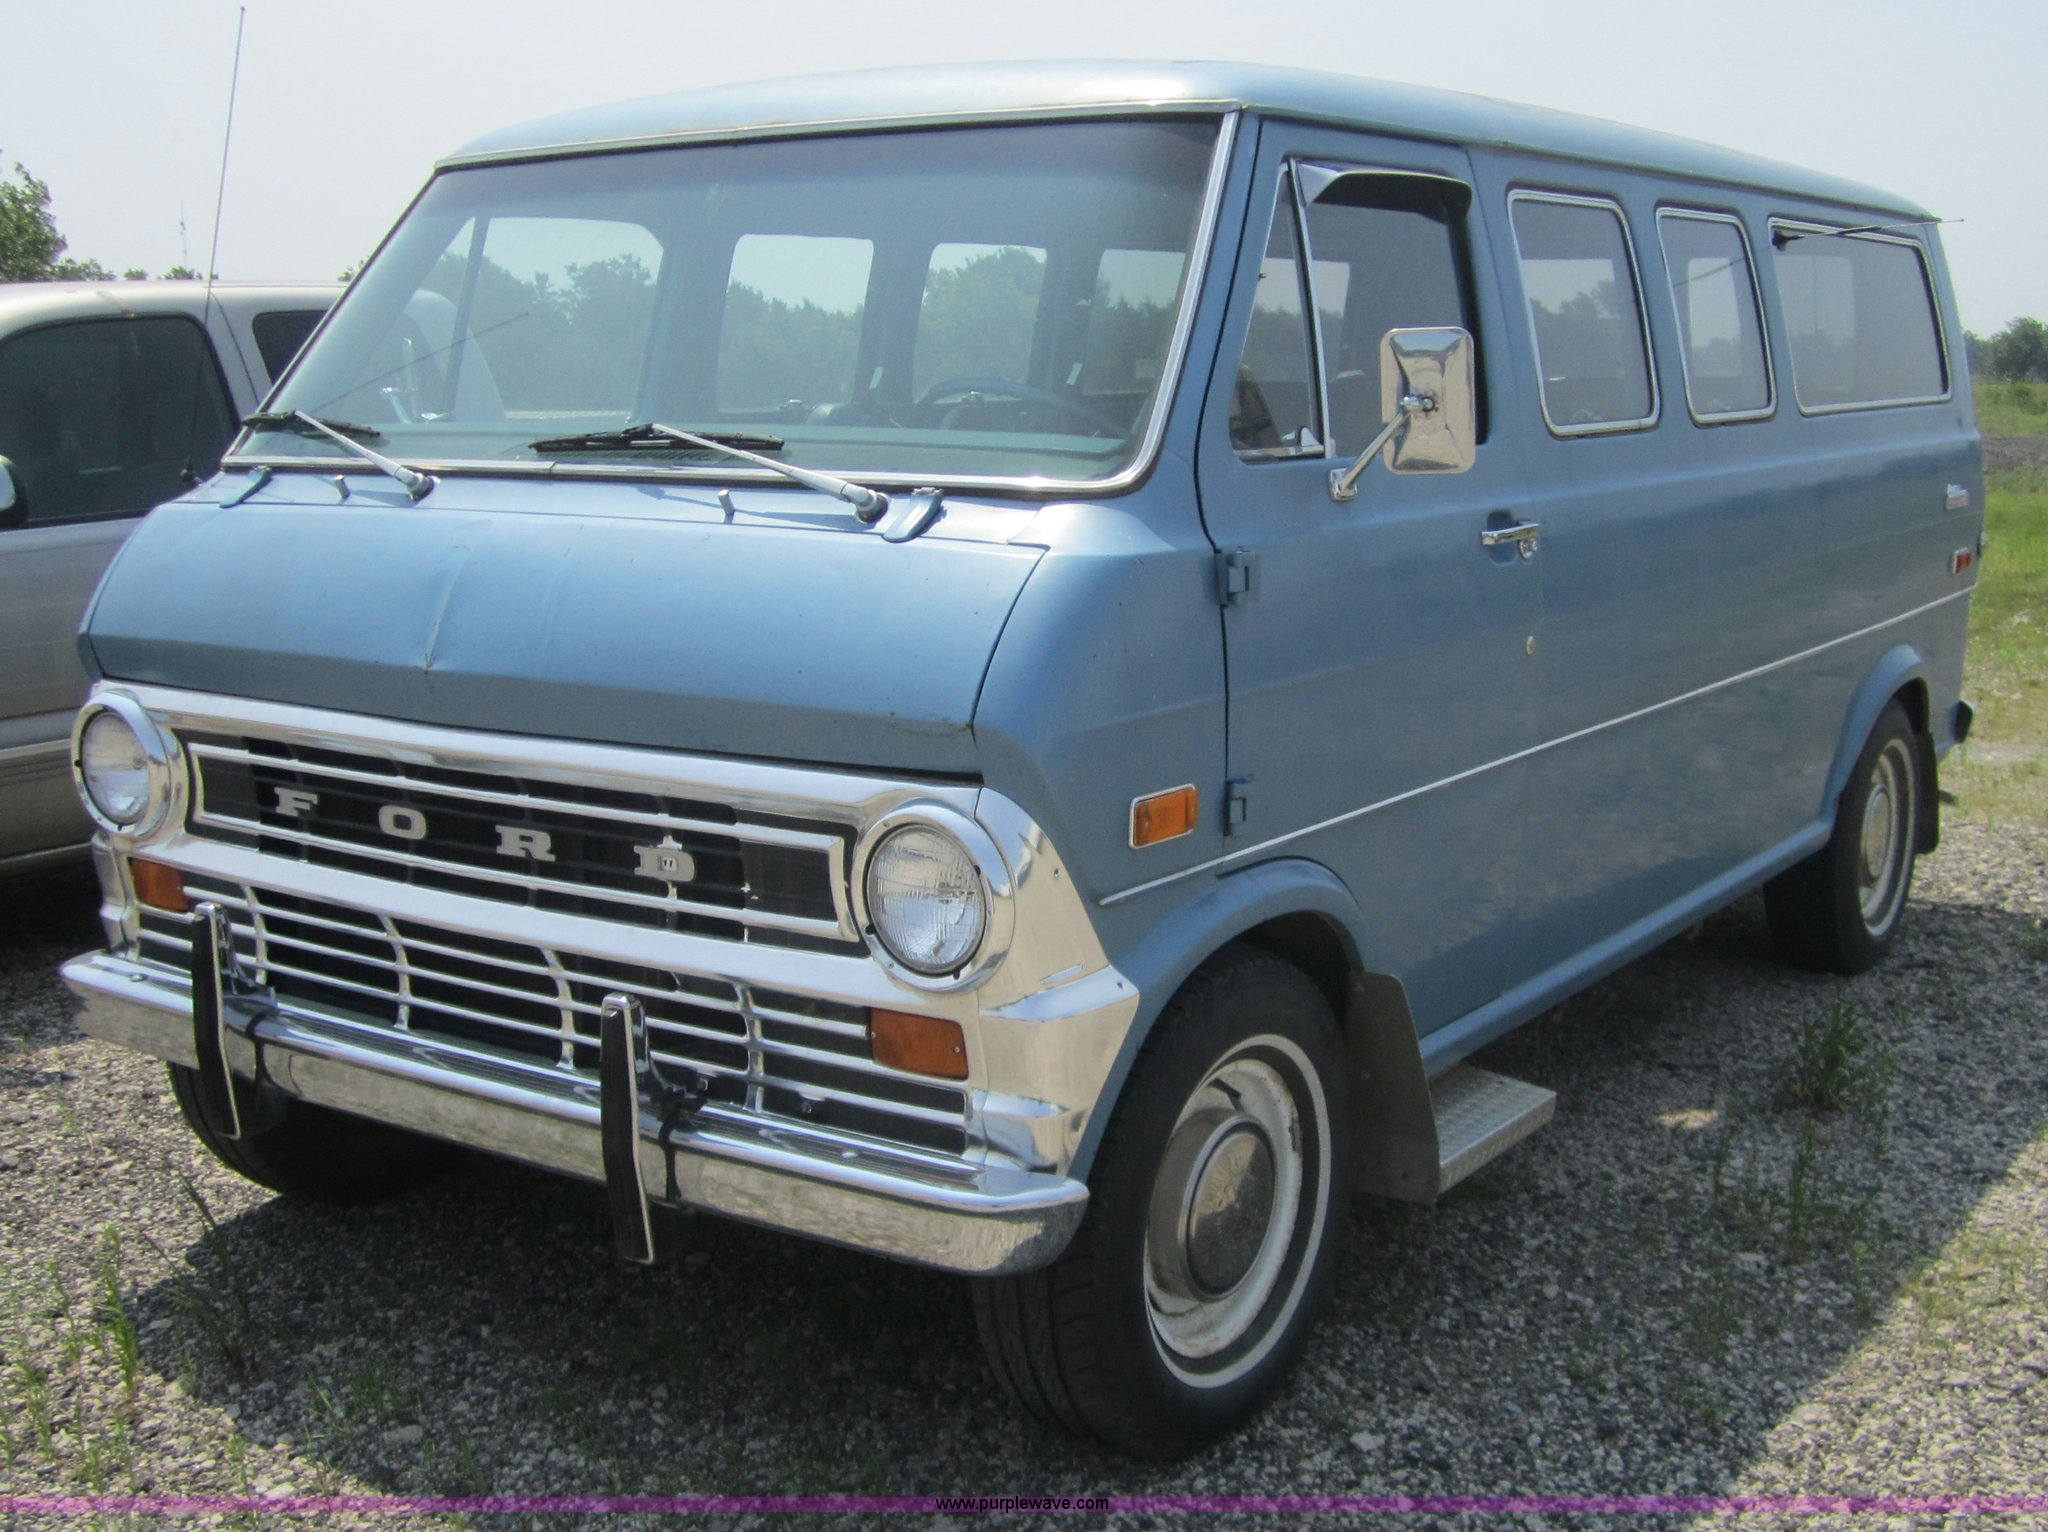 1974 Ford Chateau E200 club wagon van | Item 3794 | SOLD! Ju